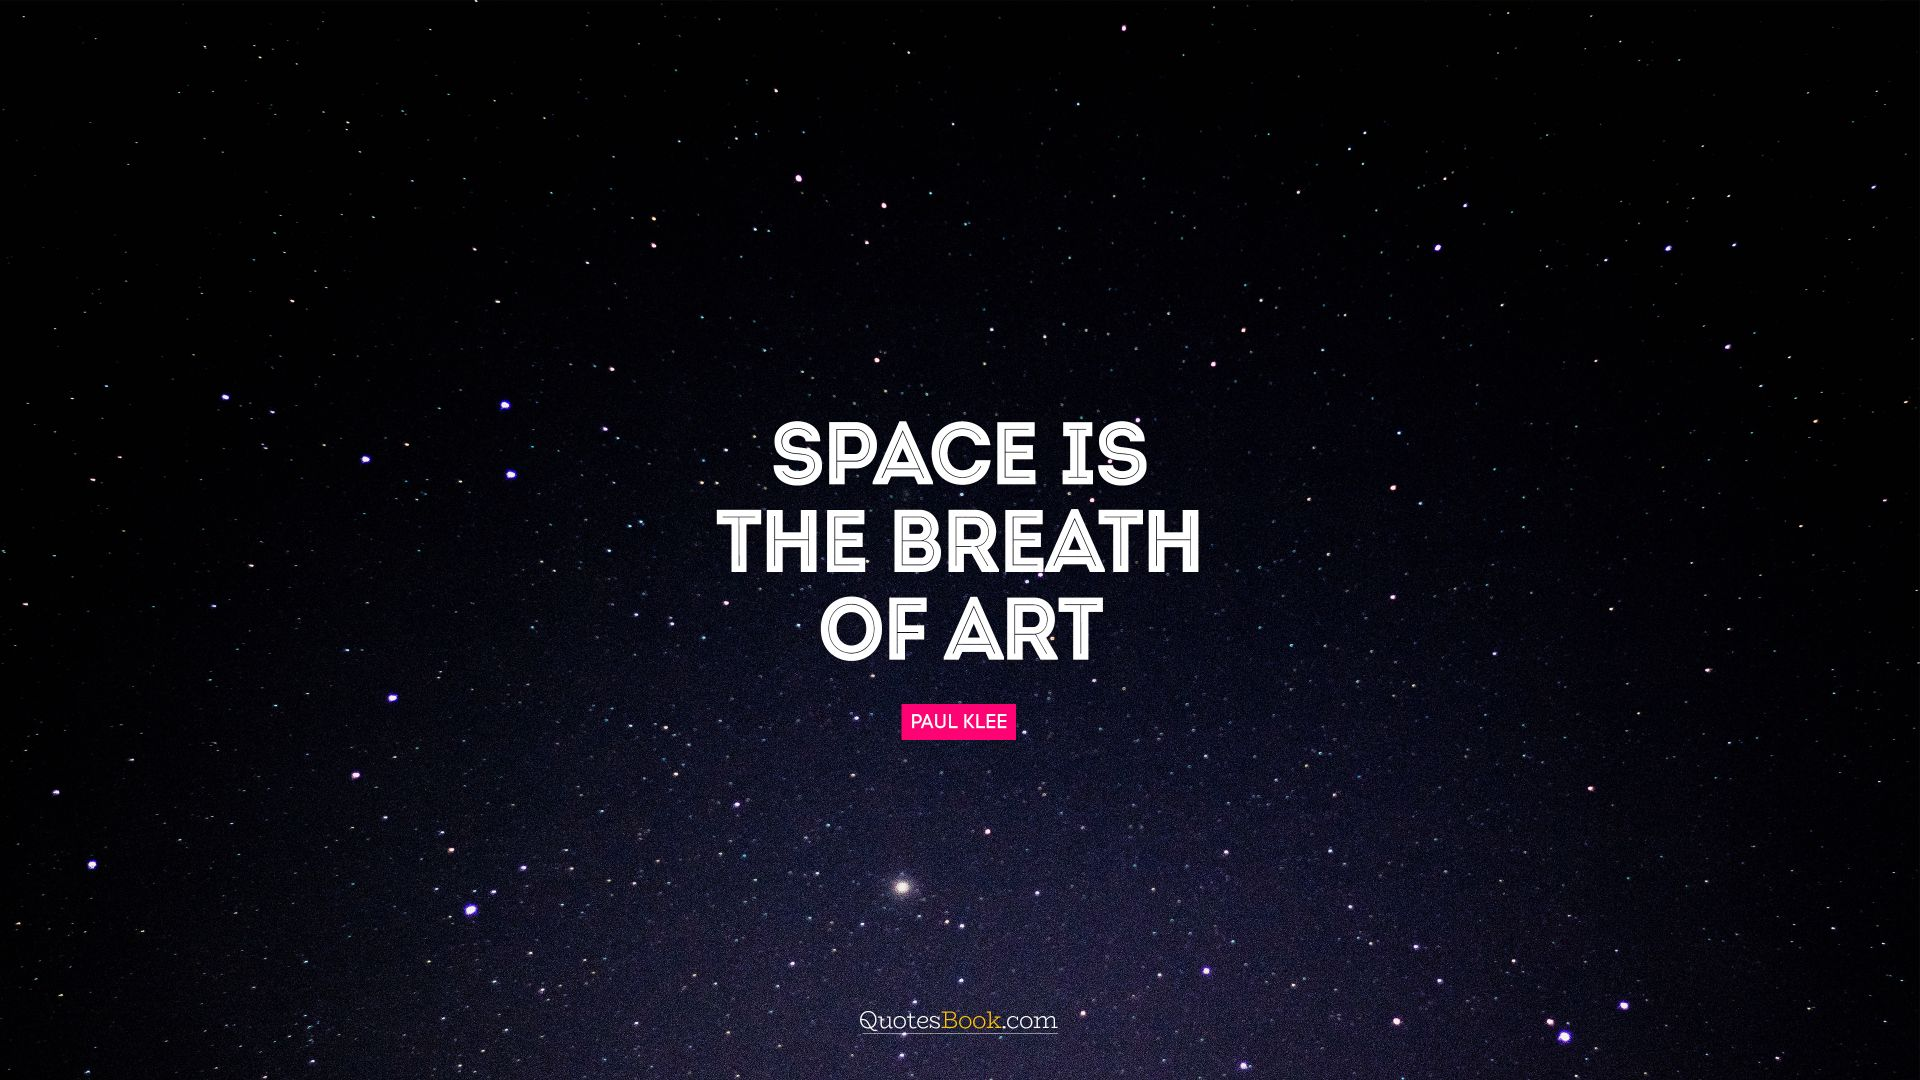 Space is the breath of art. - Quote by Frank Lloyd Wright